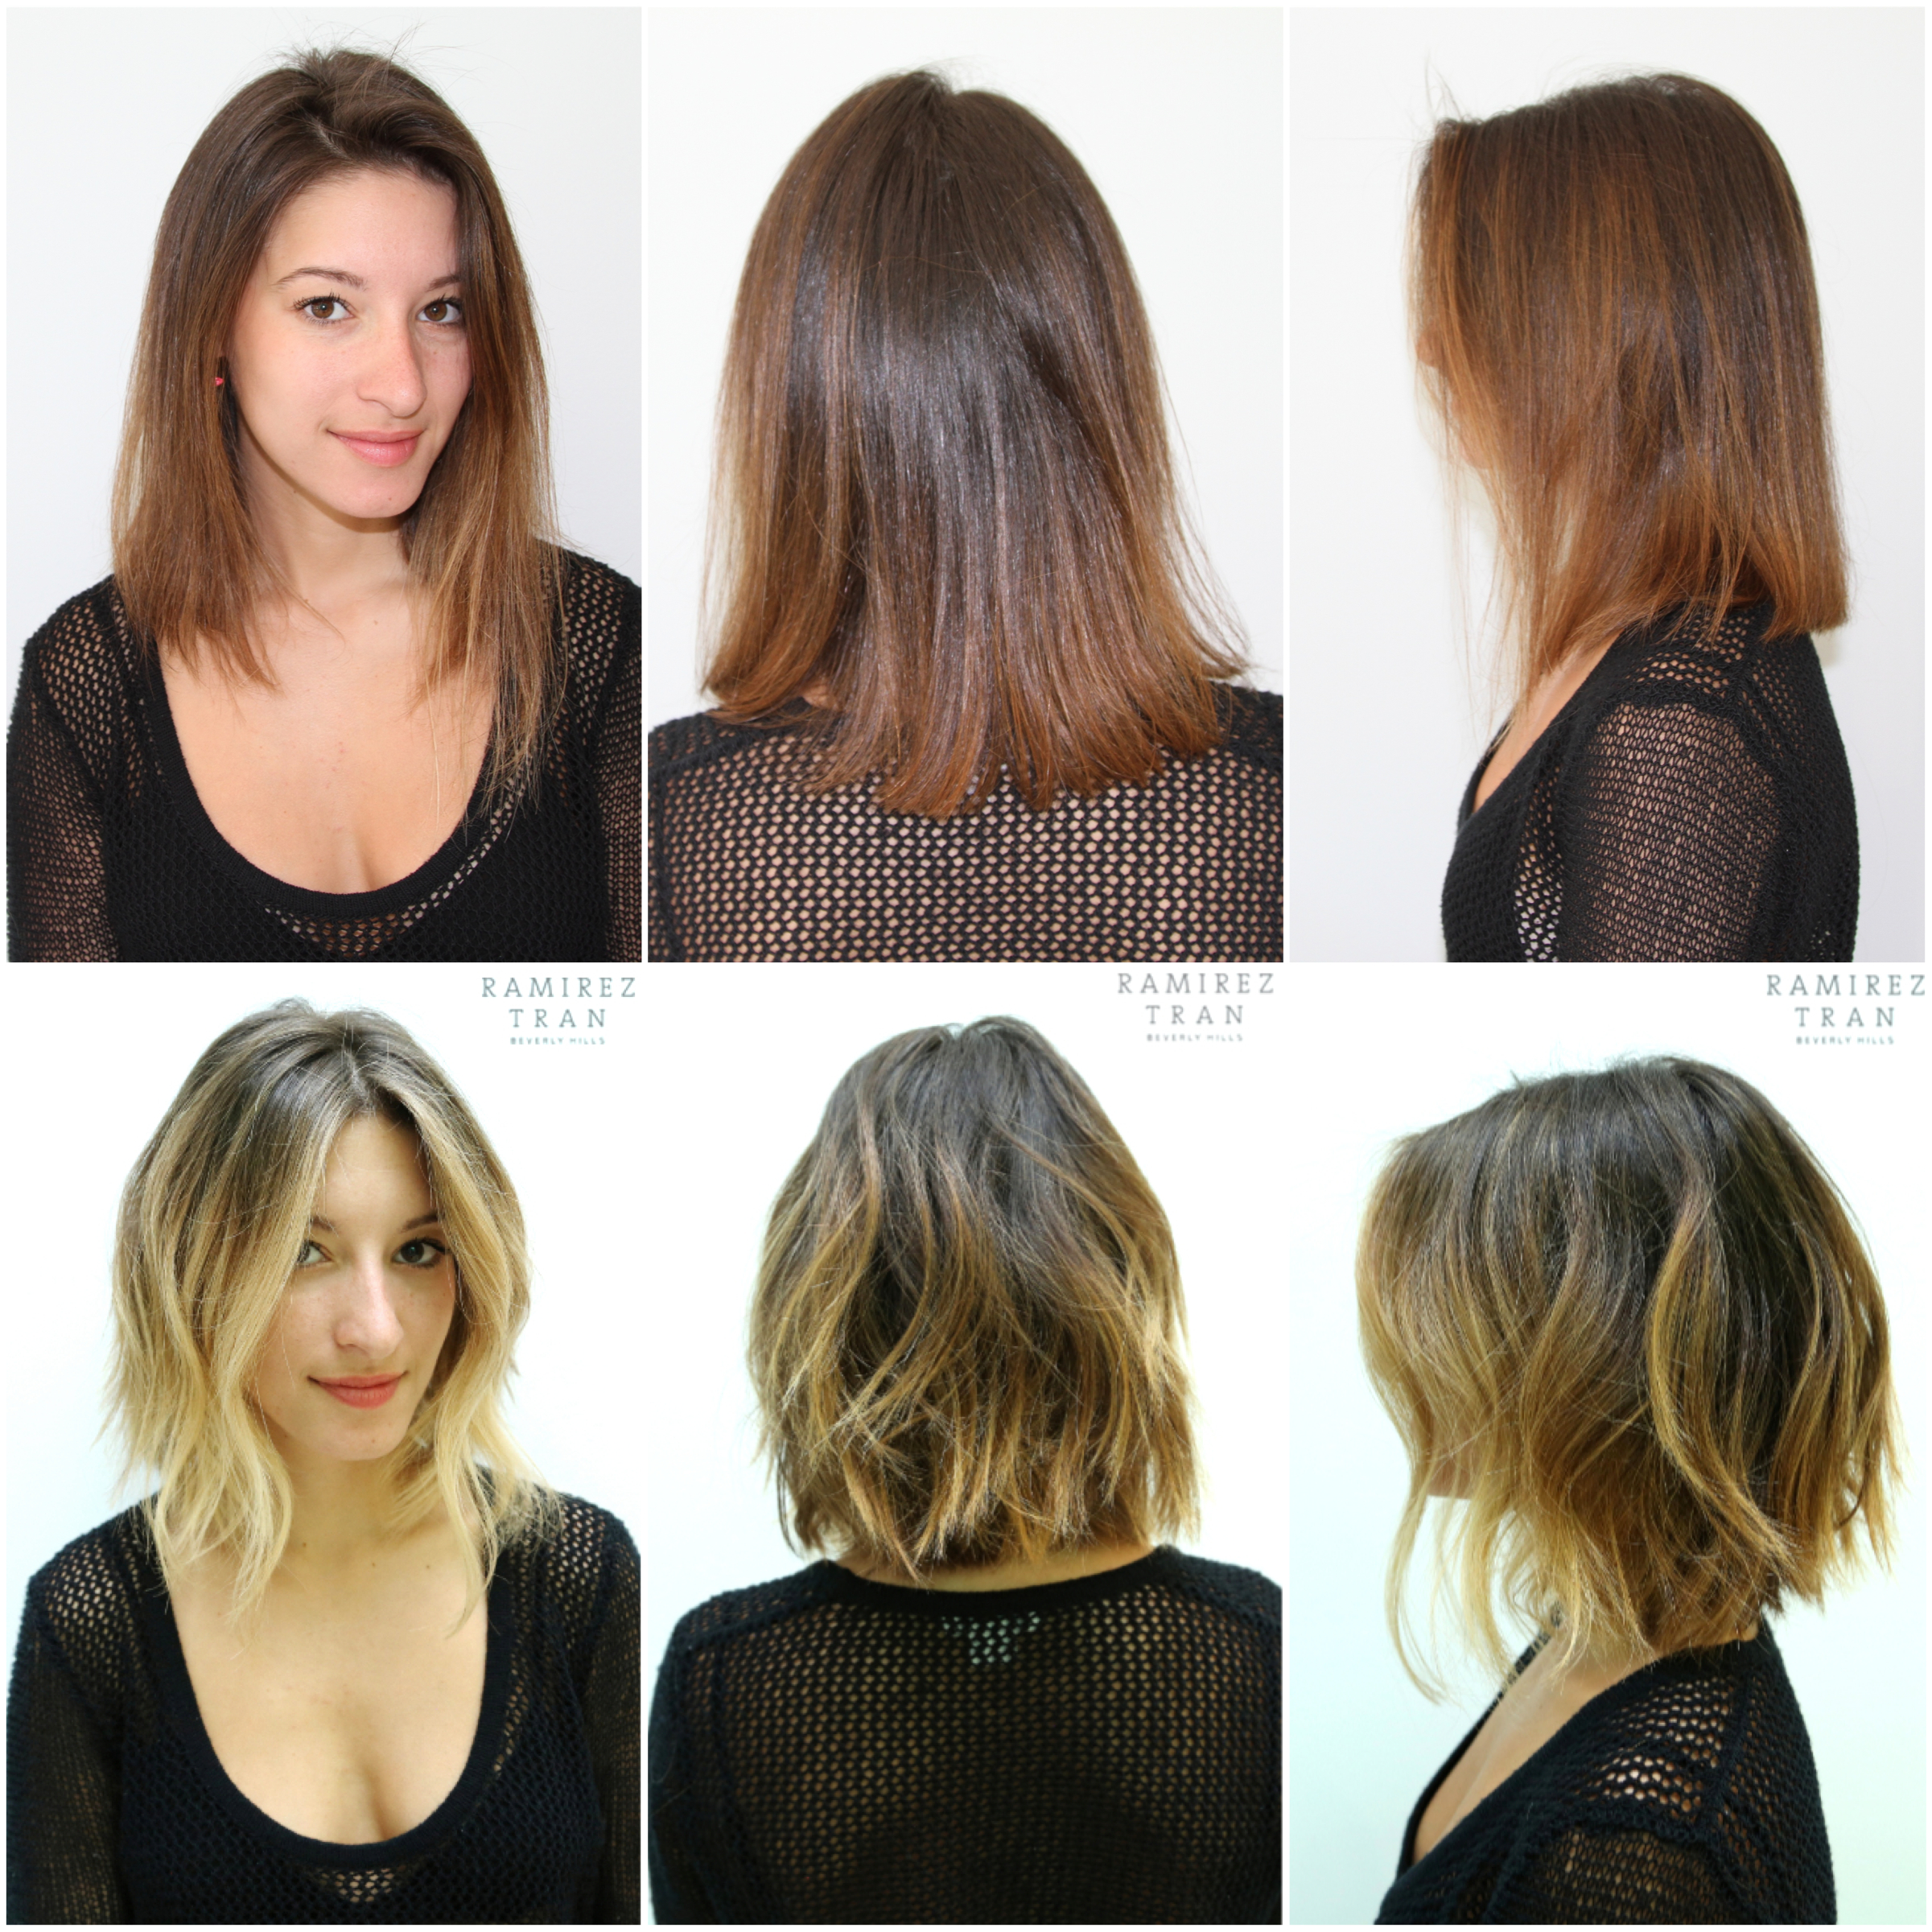 Before and after archives page 32 of 65 ramirez tran salon from plain and slightly too red to stunning sunkissed brunette johnny gave her a natural looking color with face framing highlights pmusecretfo Image collections